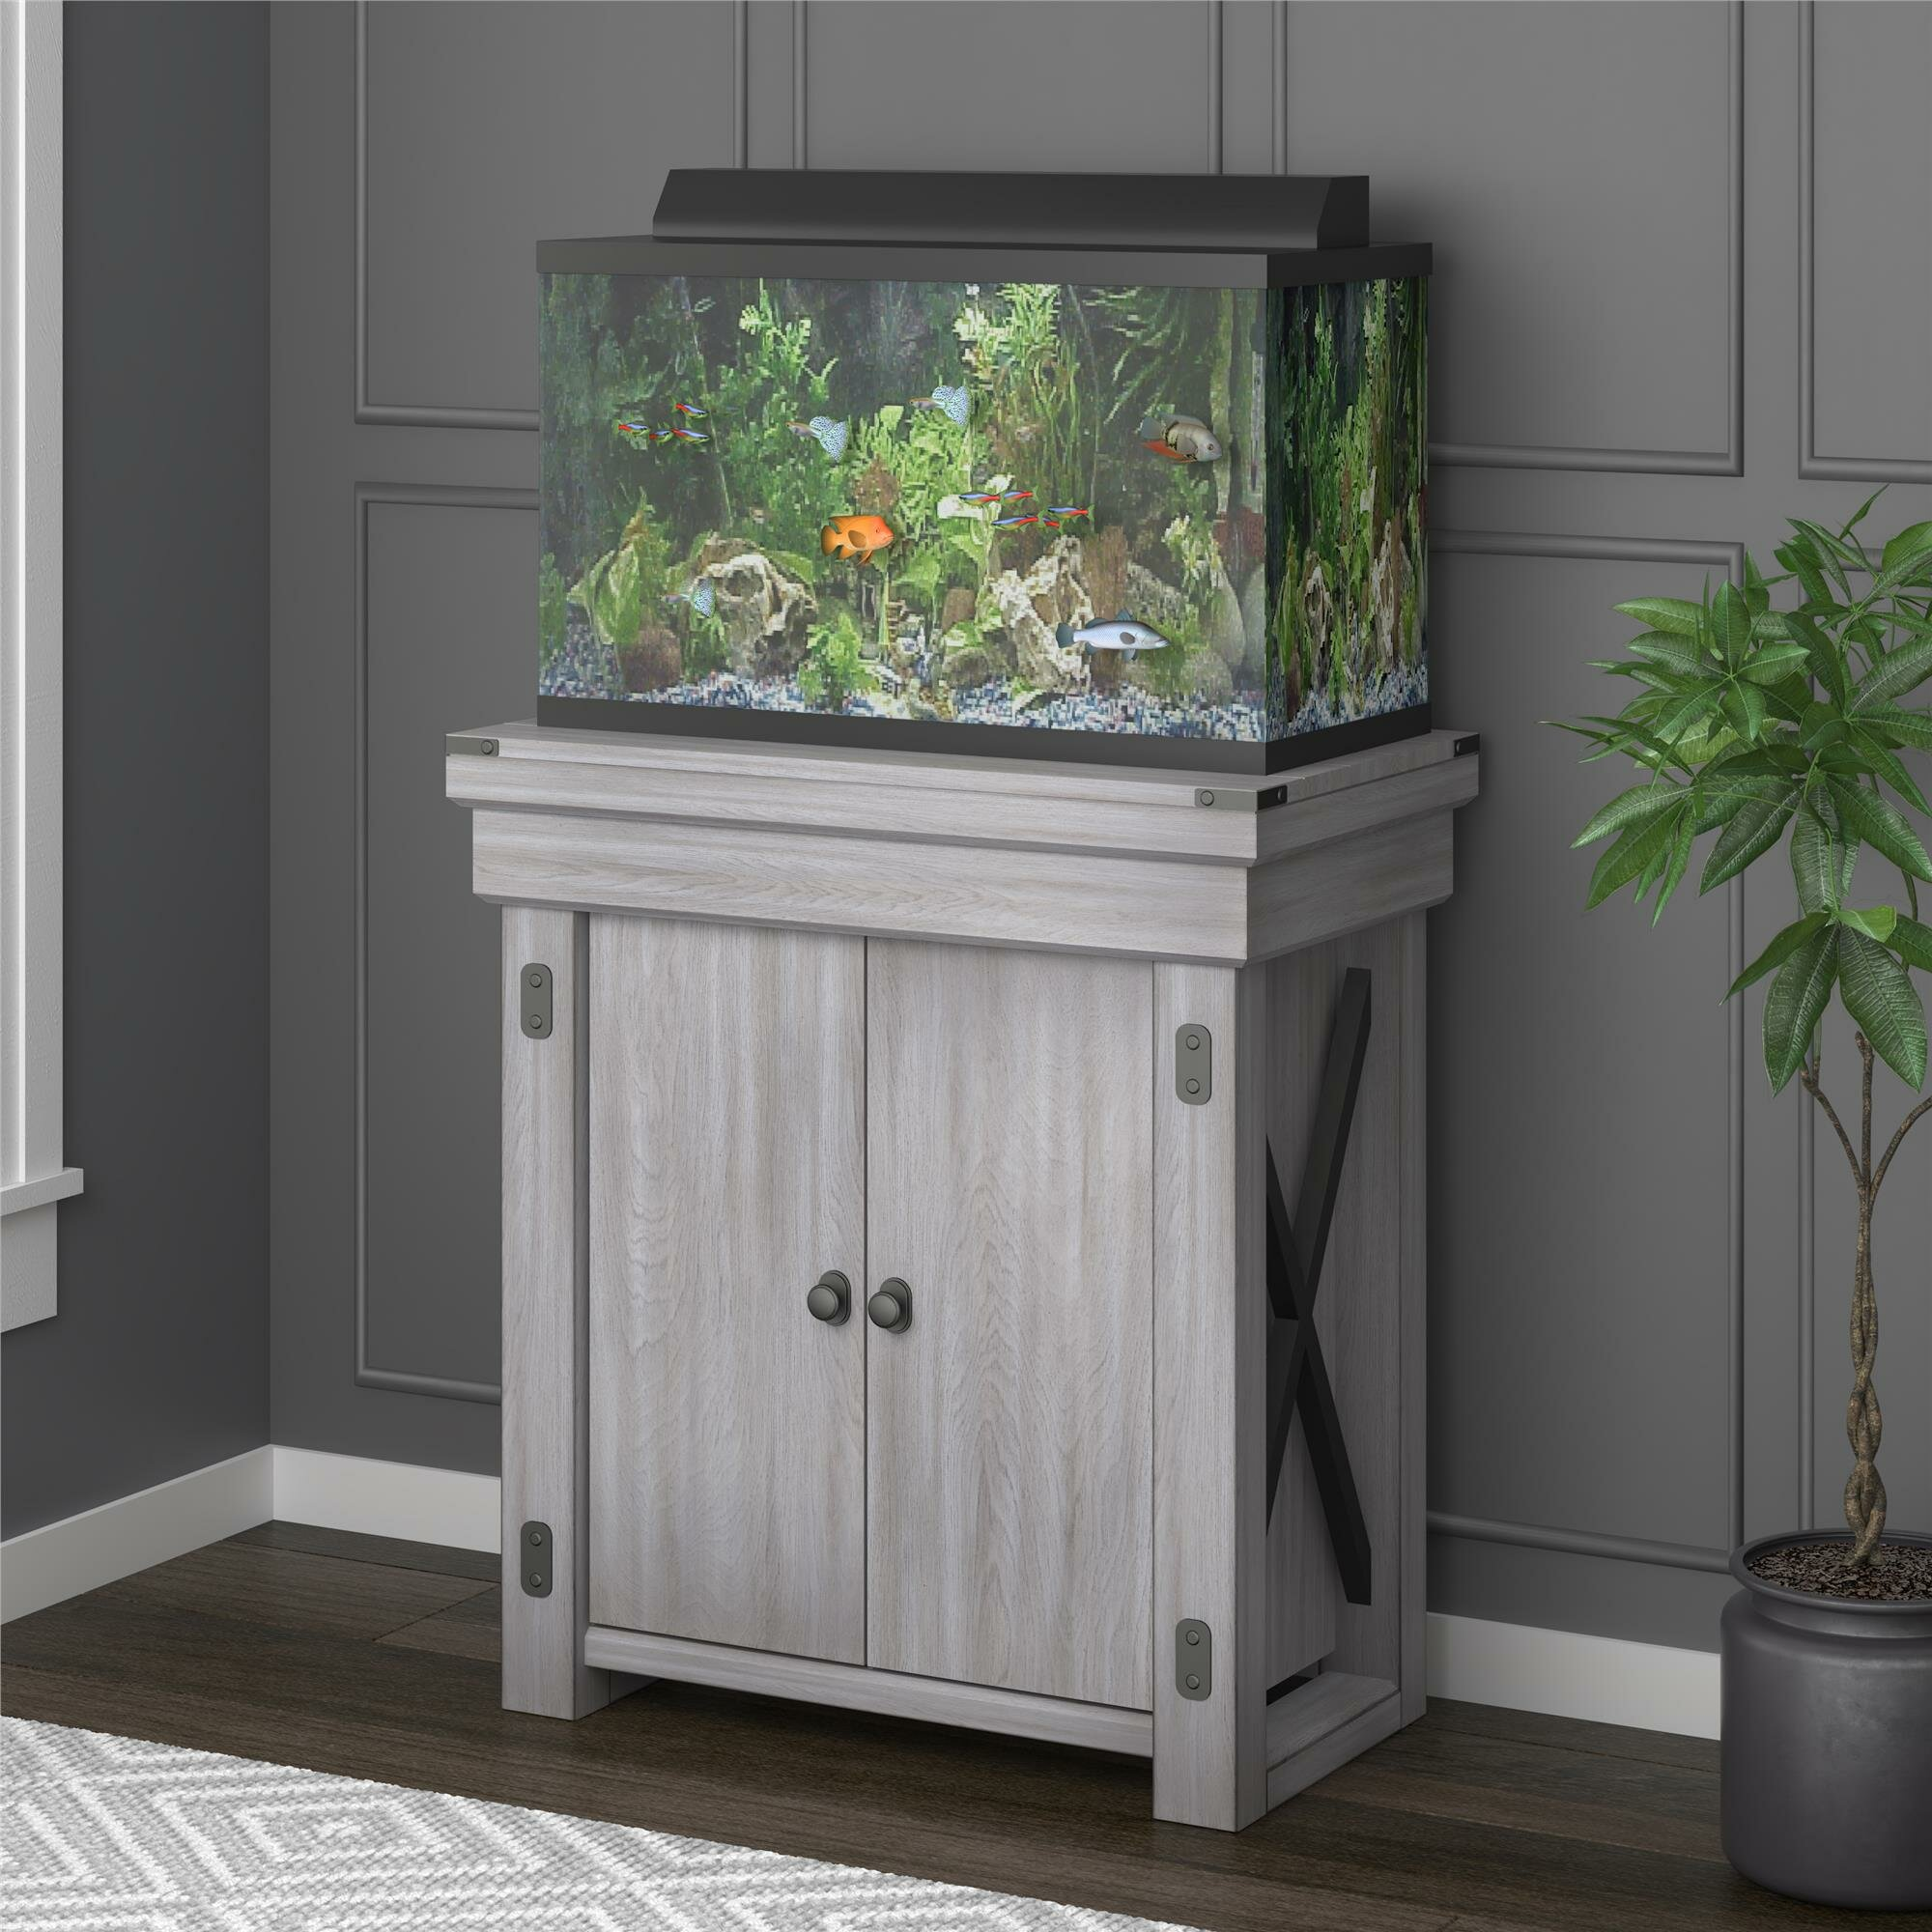 55 Gallon Fish Tank Stand | Wayfair